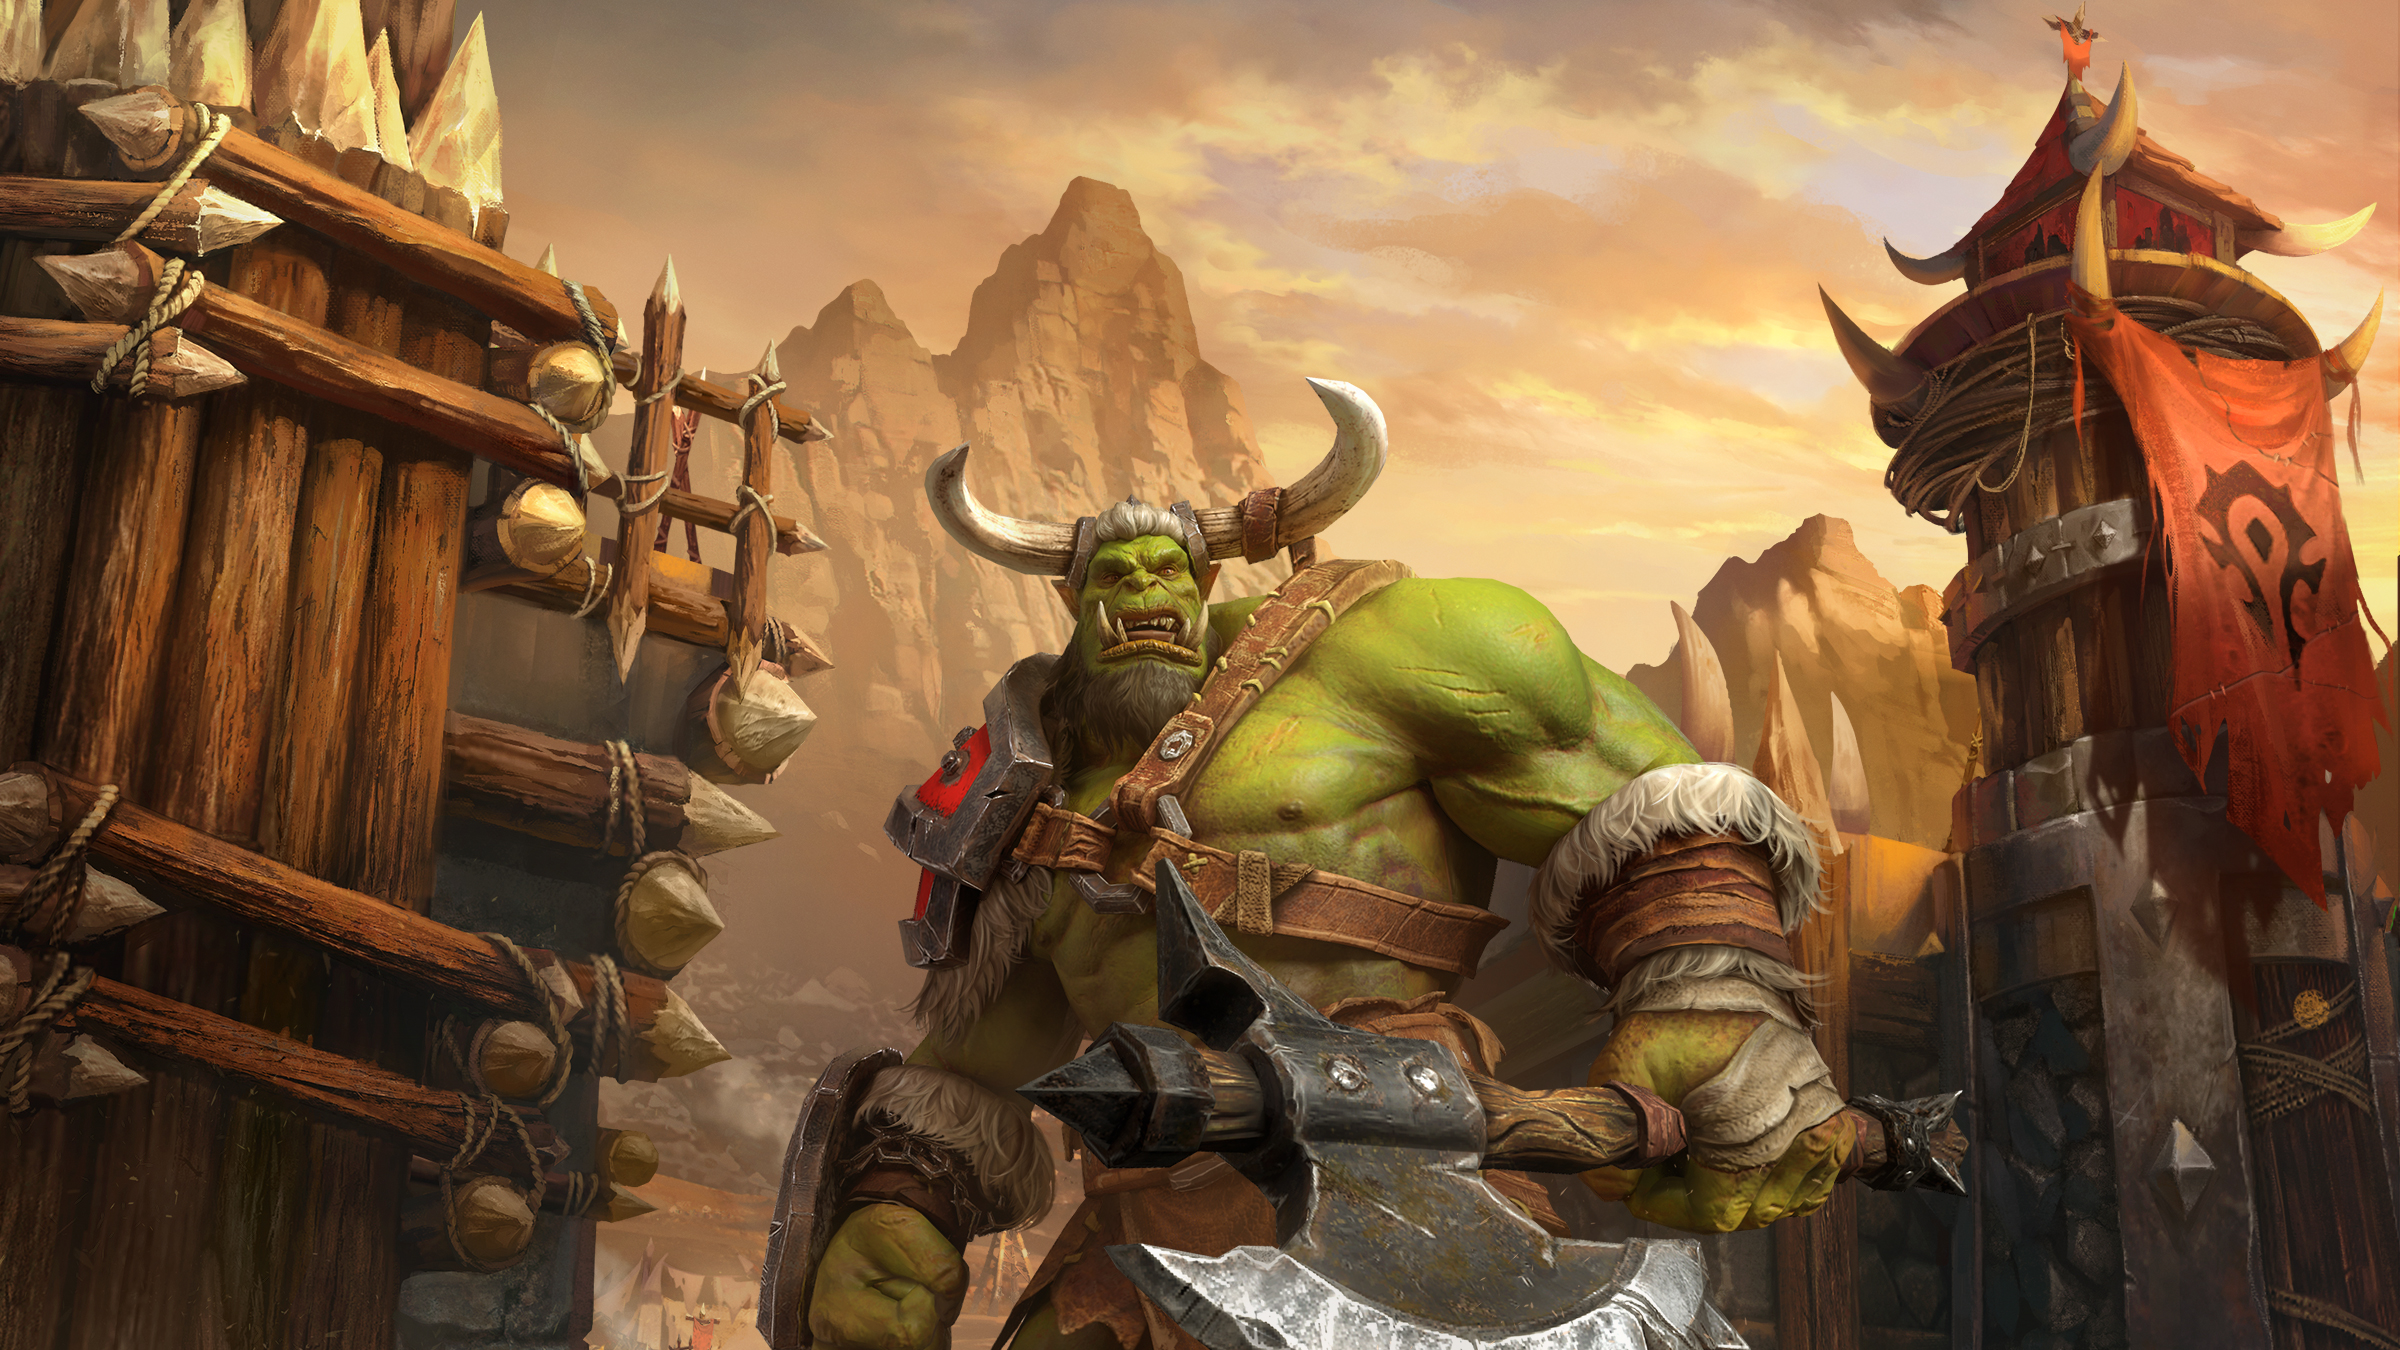 Play Warcraft III: Reforged and Relive the Beginnings of World of Warcraft